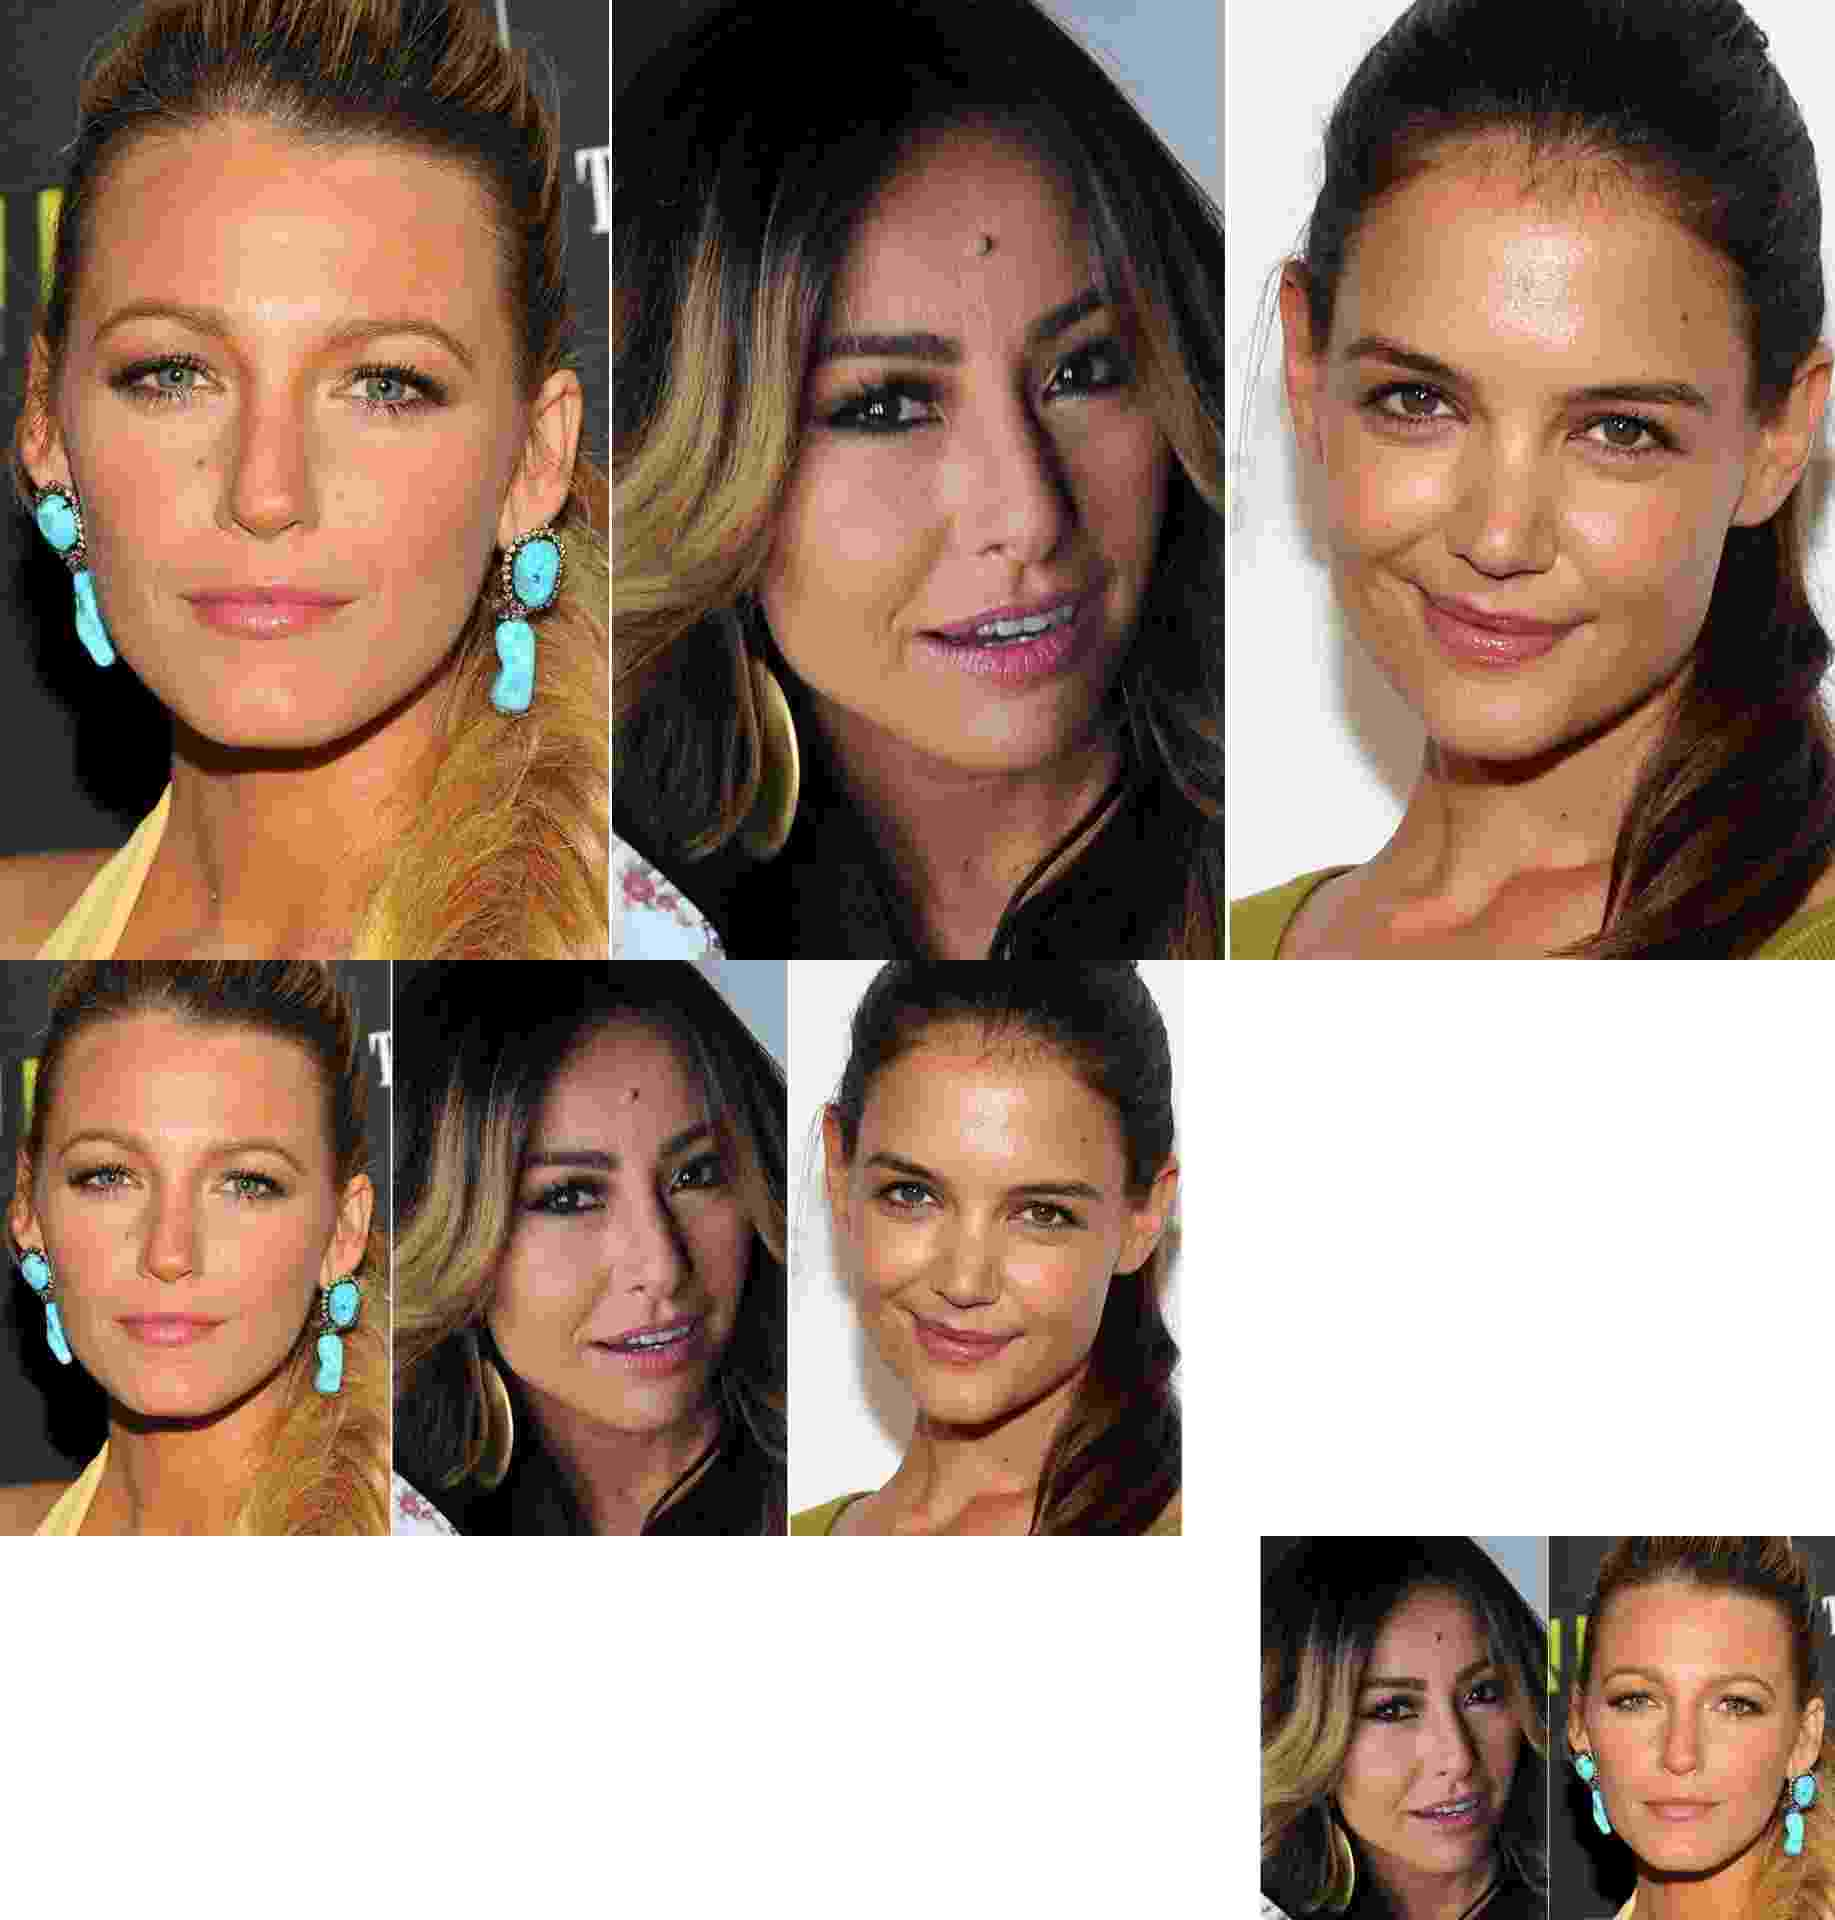 Blake Lively, Sabrina Sato, Katie Holmes - Getty Images/AGNews/MontagemUOL